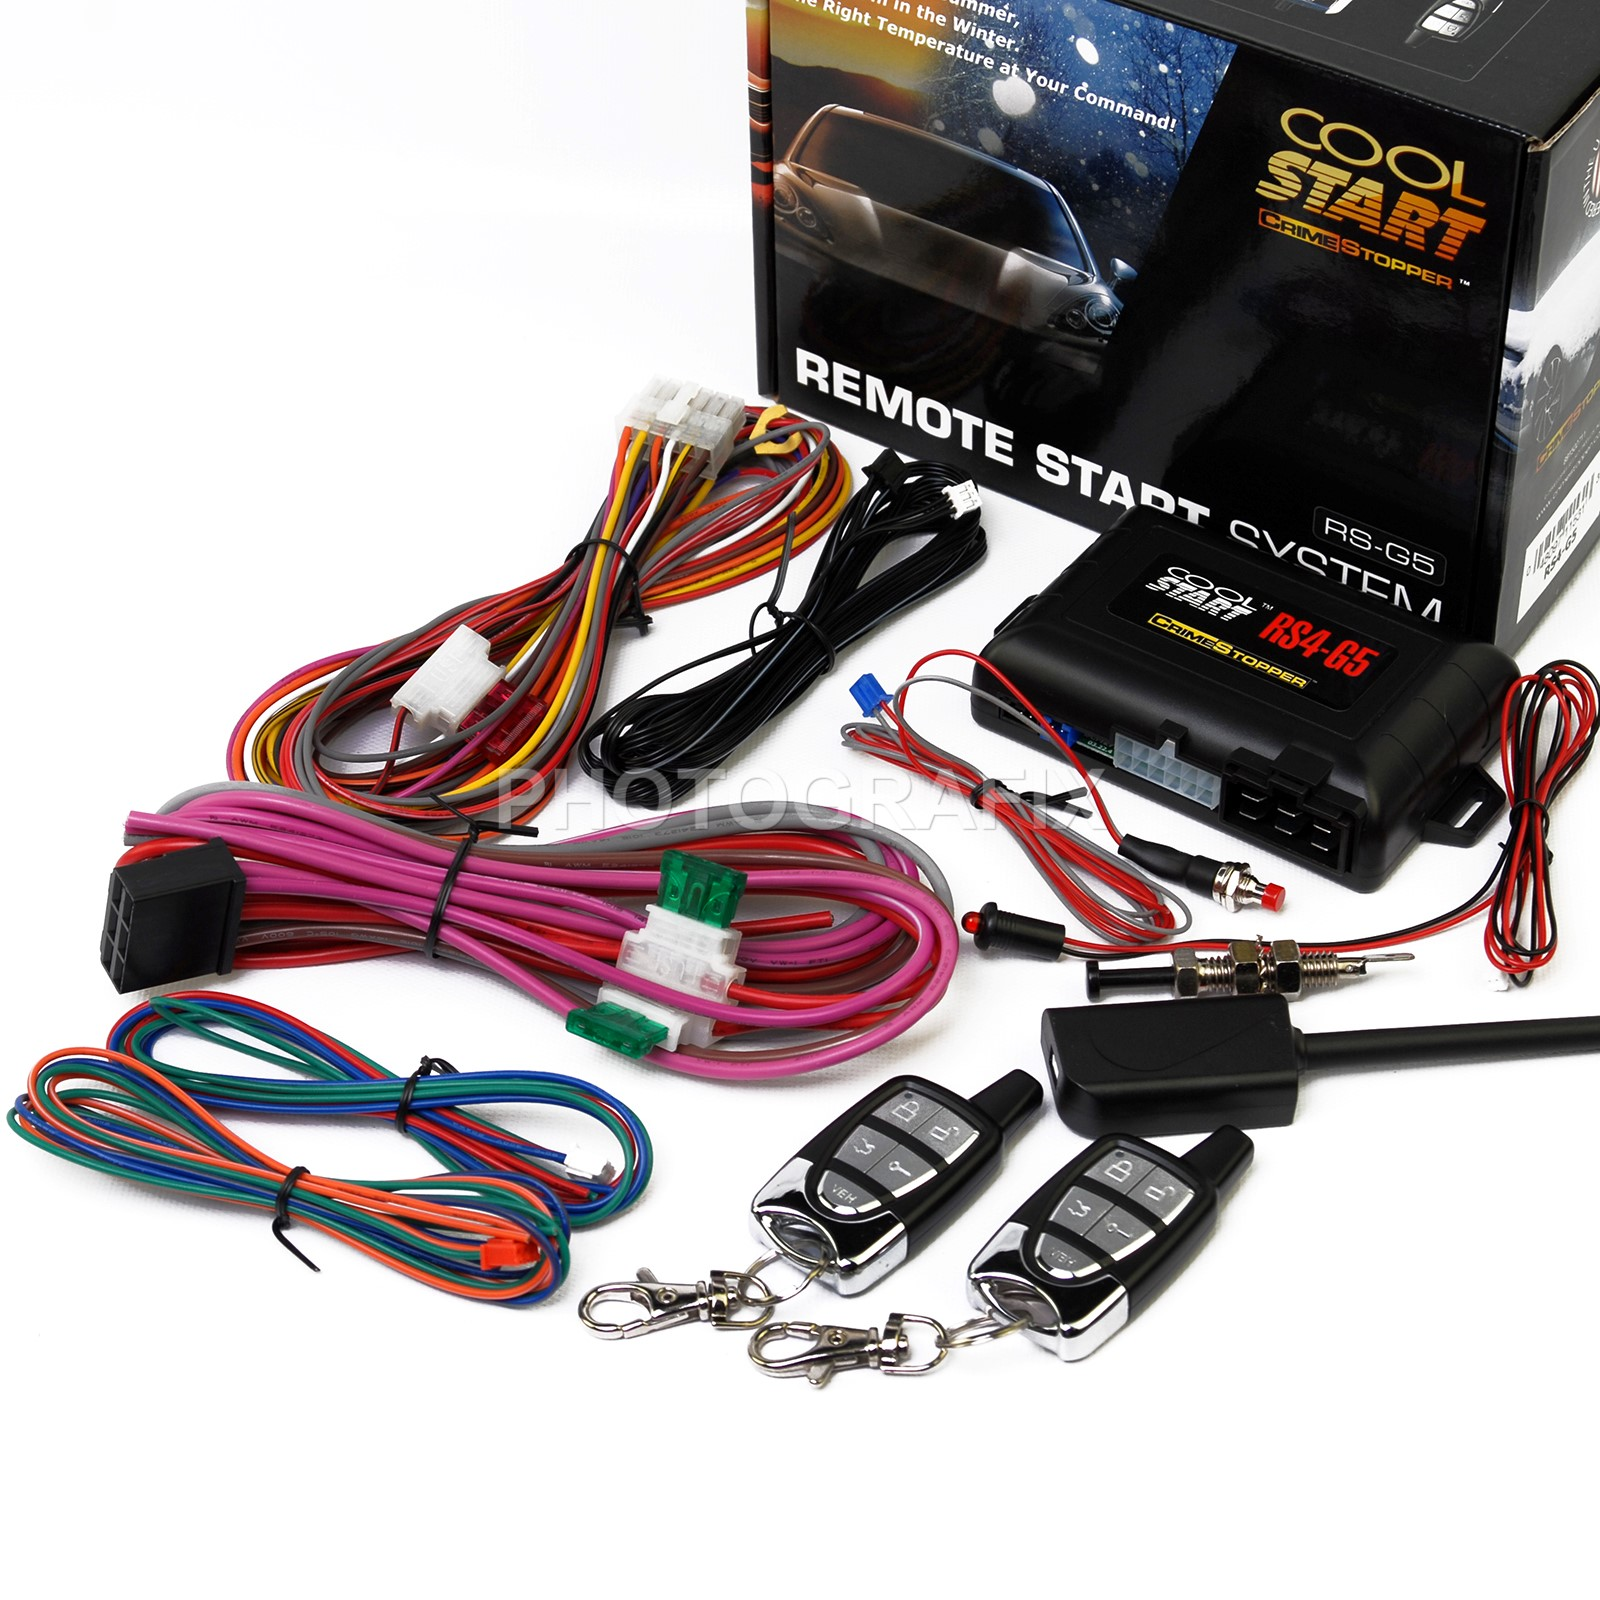 crimestopper rs4 g5 1 way remote start keyless entry system with trunk release [ 1600 x 1600 Pixel ]